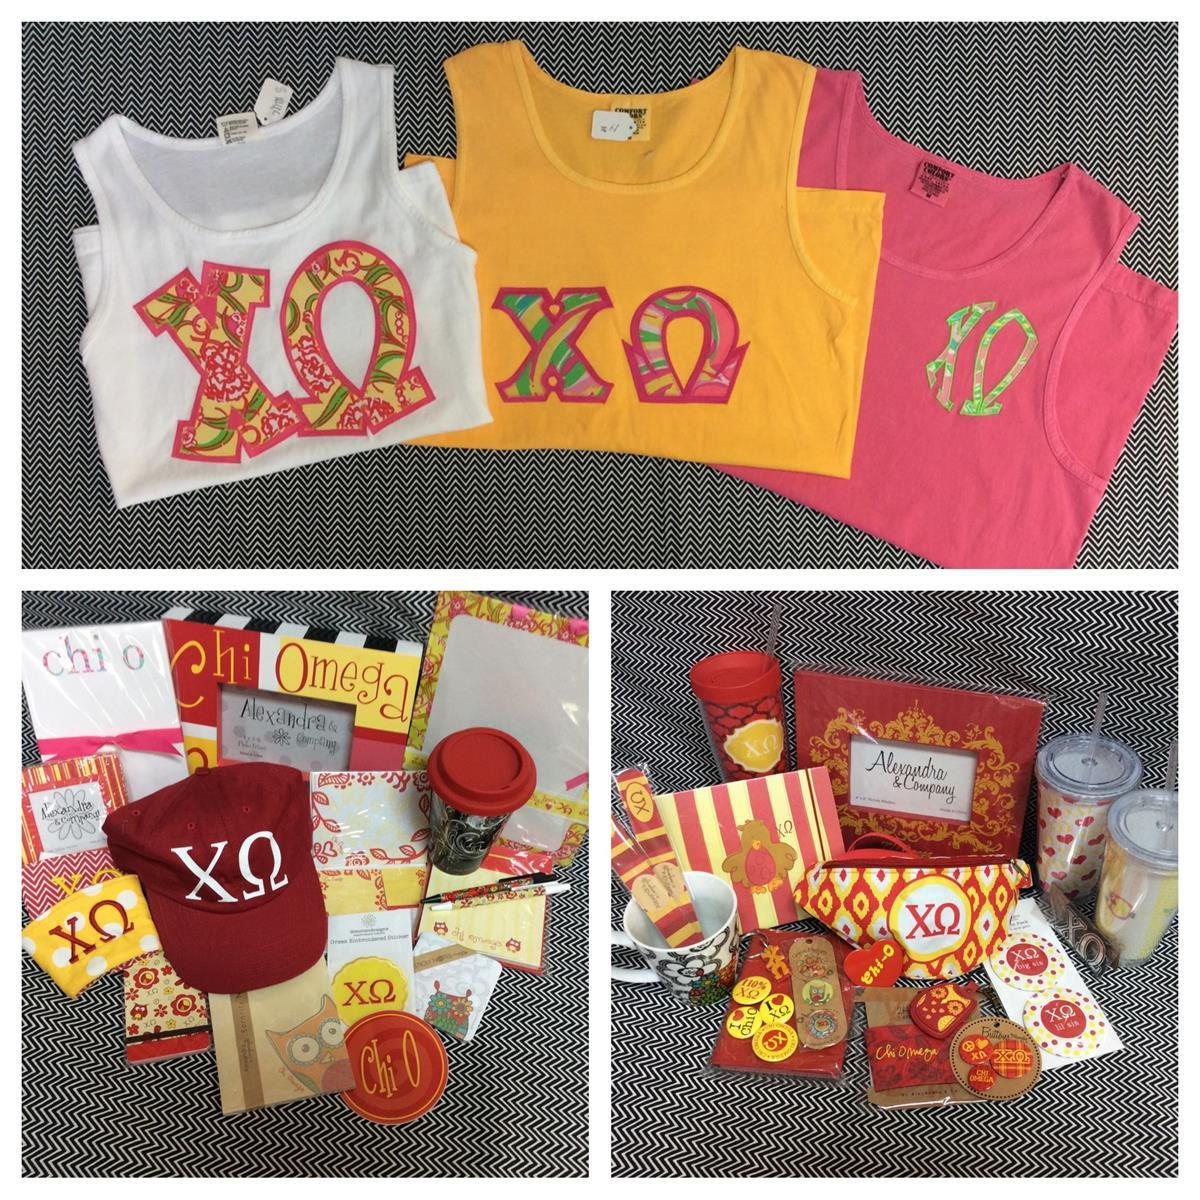 Chi Omega Custom Embroidery T-shirts Accessories Campus Gear Stickers